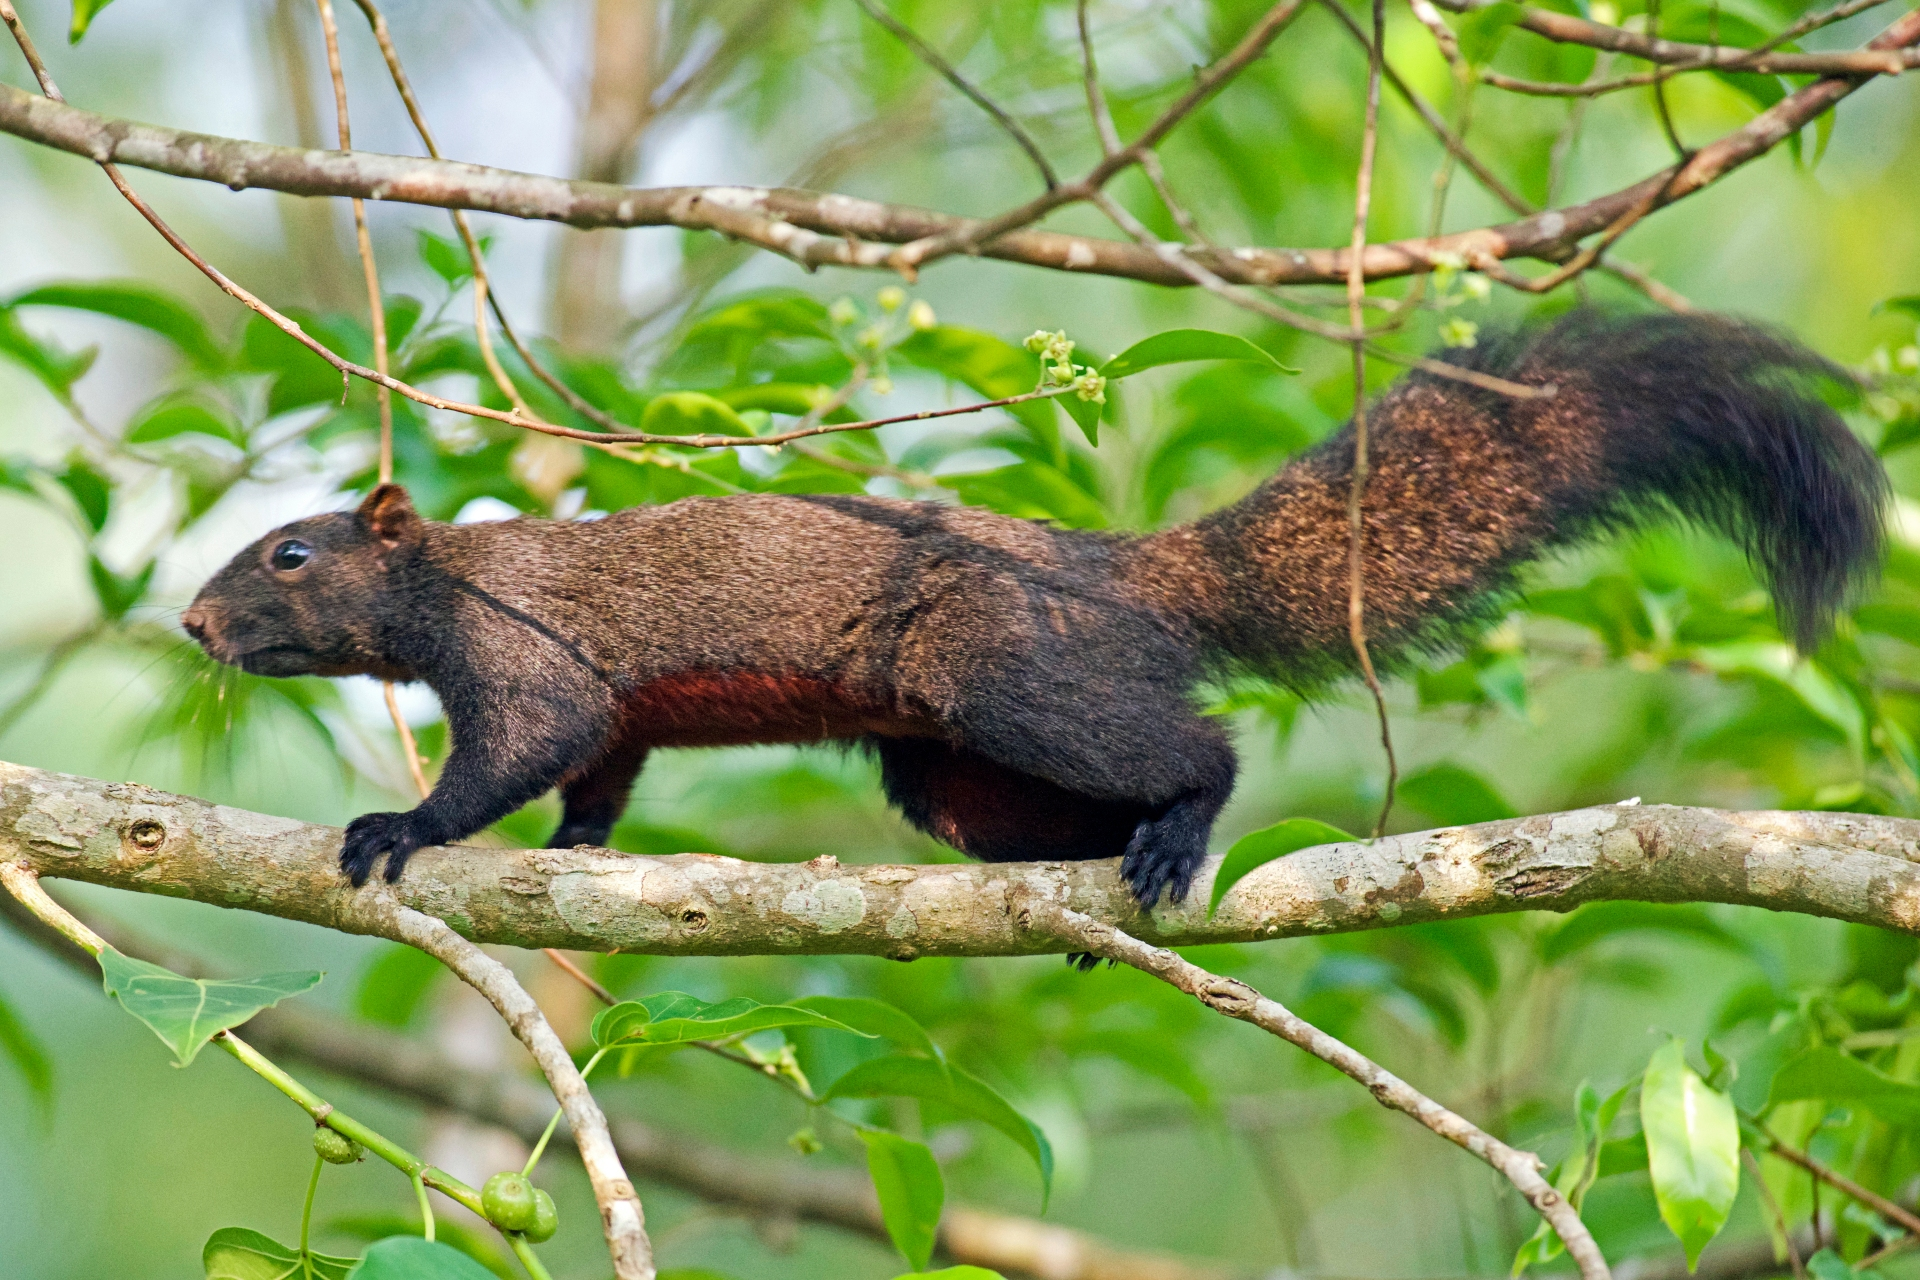 The Pallas's squirrel has strong claws which allow it to grip branches firmly, or dig holes to store nuts. Photo: Vijay Anand Ismavel